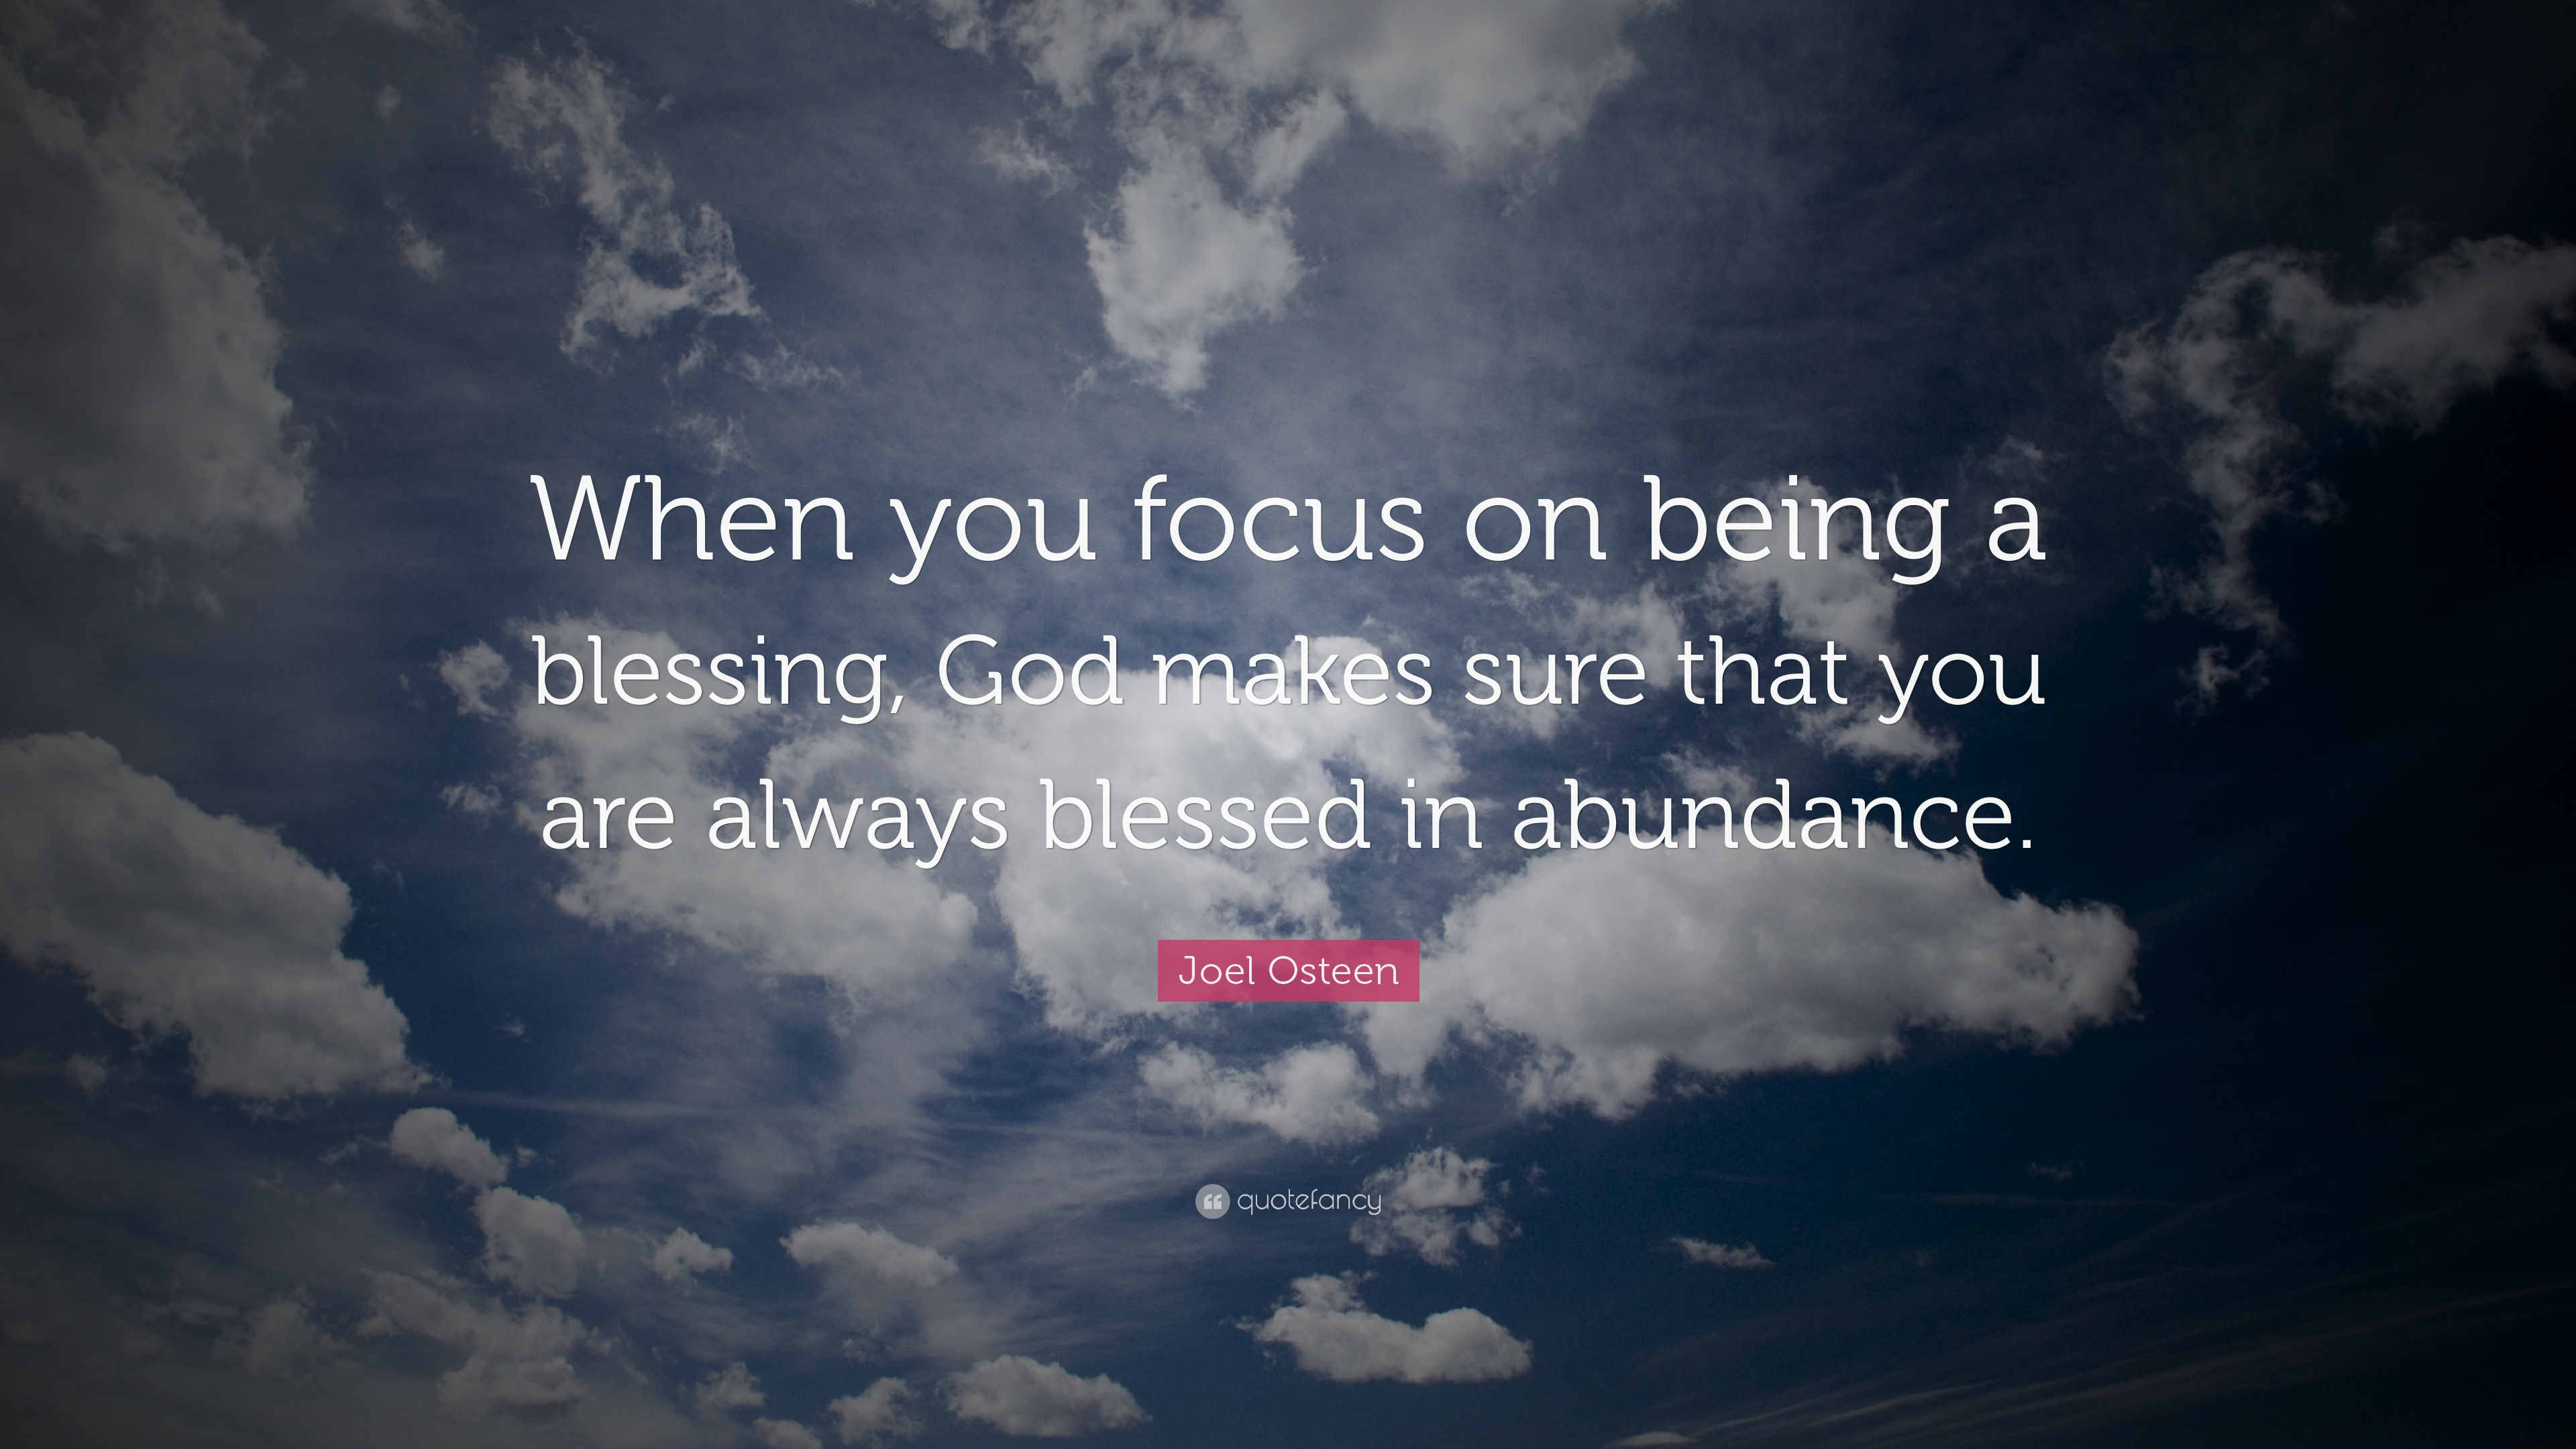 Greg Plitt Quotes Wallpaper Joel Osteen Quote When You Focus On Being A Blessing